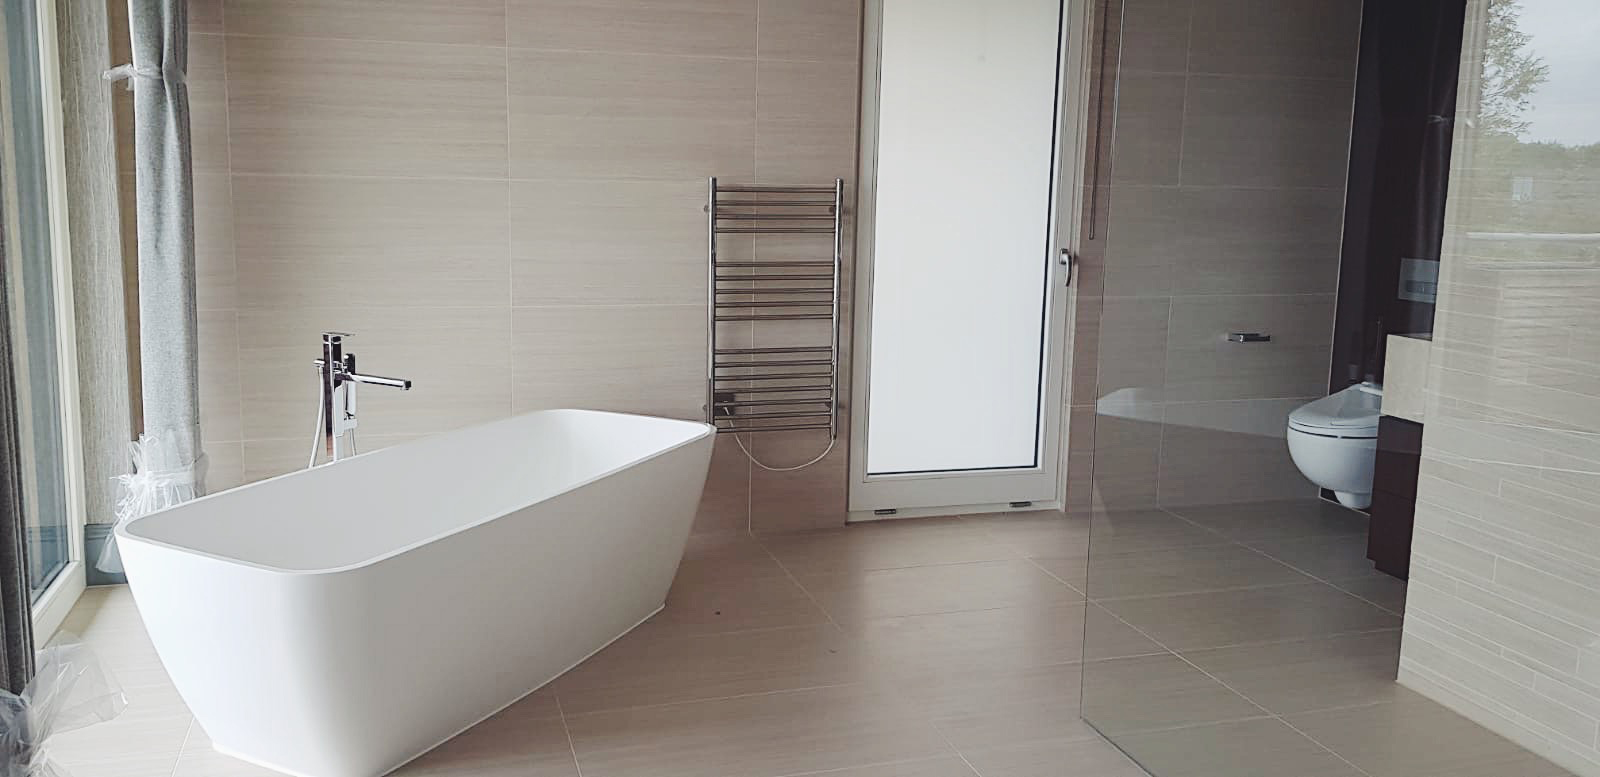 Bathroom designs C.P. Jefferies.jpg